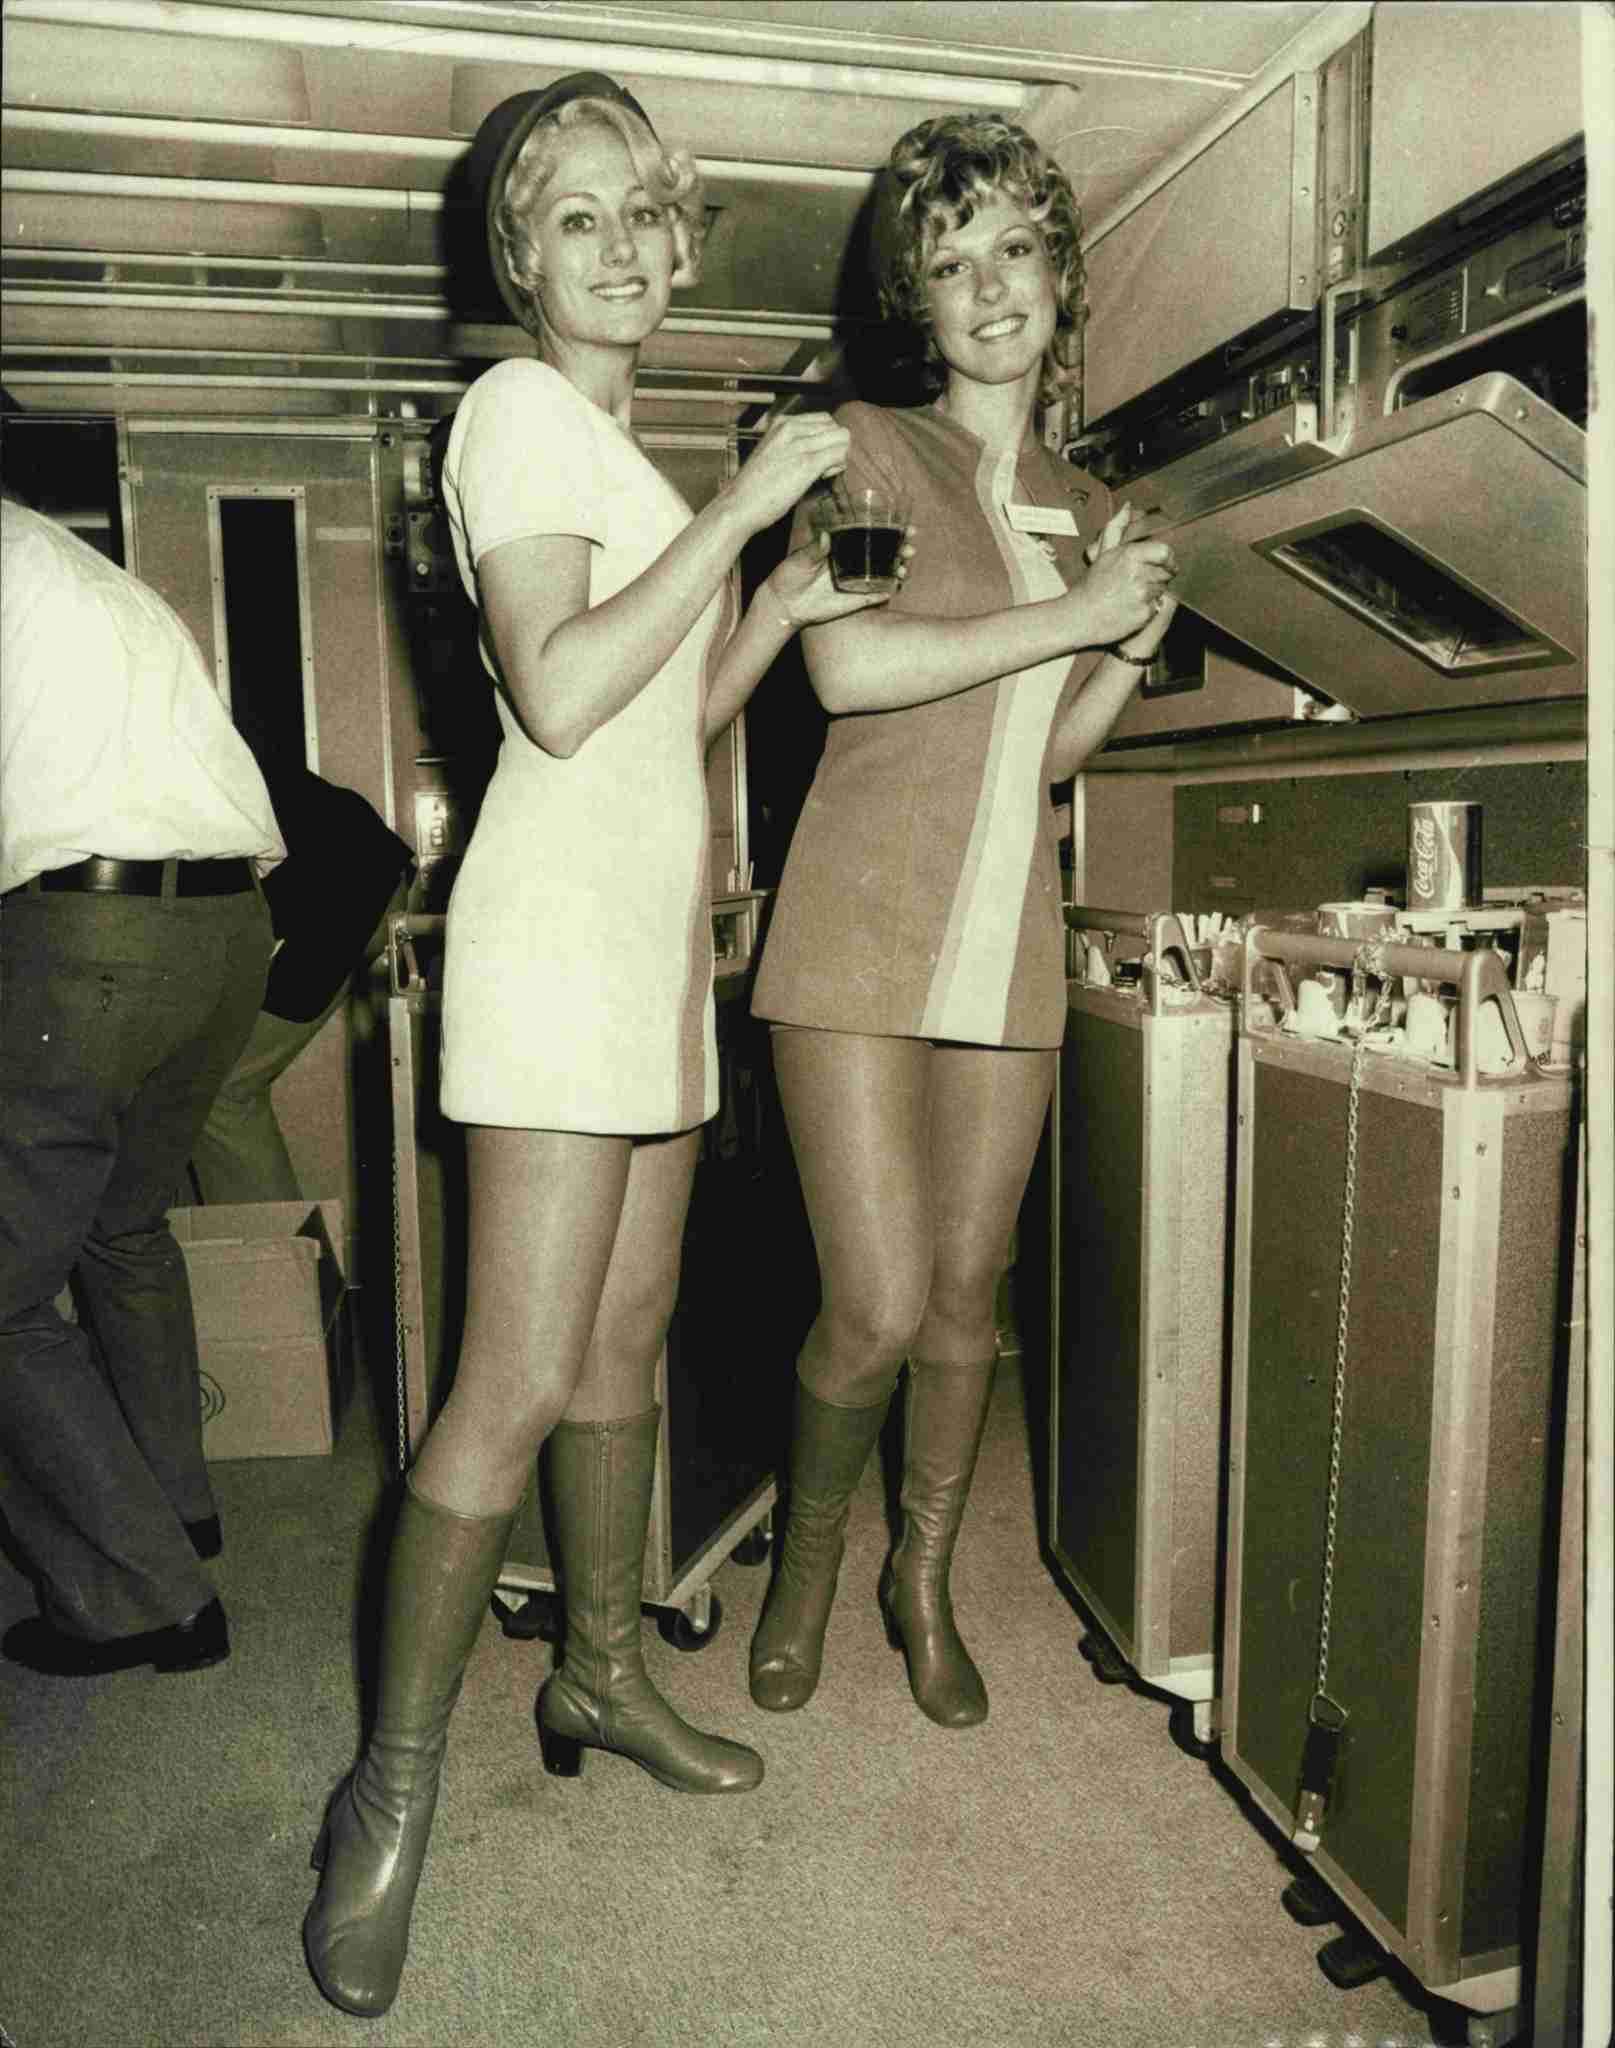 The Lockheed L1011 Tristar in Sydney for demonstration flights to try to sell the jet to TAA and Ansett.Flight hostesses of Pacific South-West Airlines LTR : Ann Bosone, 23, of San Diego, California, and Debbie Patterson, 24, of San Diego, California, pictured in the downstairs galley of the plane where allin-flight food and drink is prepared. May 24, 1974. (Photo by Trevor James Robert Dallen/Fairfax Media via Getty Images).